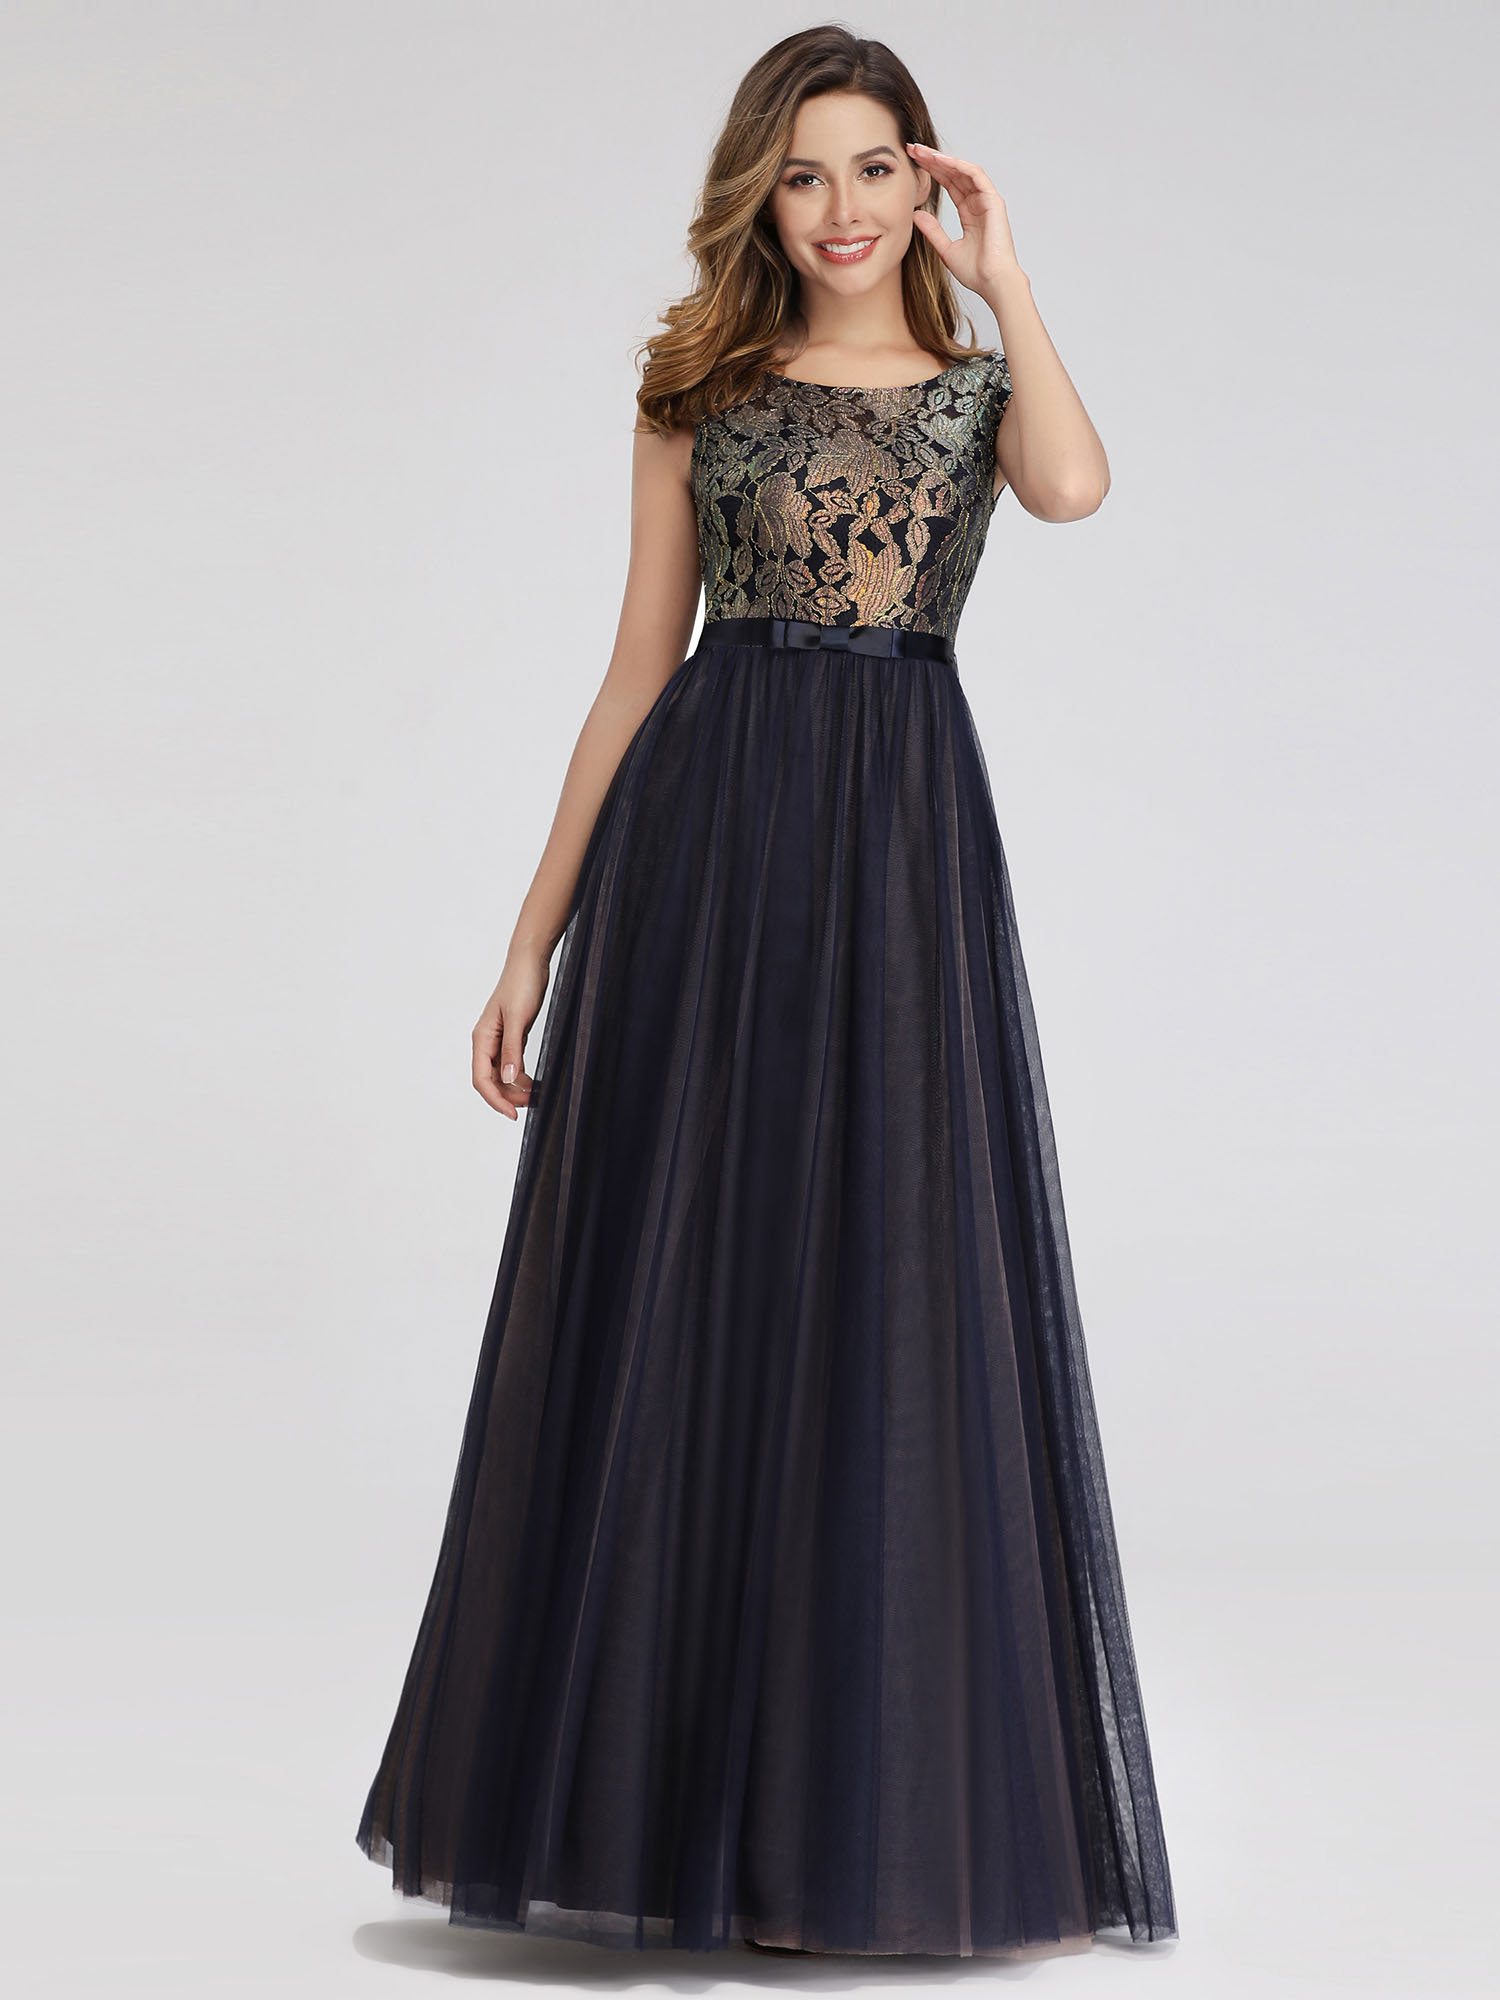 Ever-pretty-Formal-A-line-Evening-Gowns-Cocktail-Long-Lace-Homecoming-Prom-Dress thumbnail 7